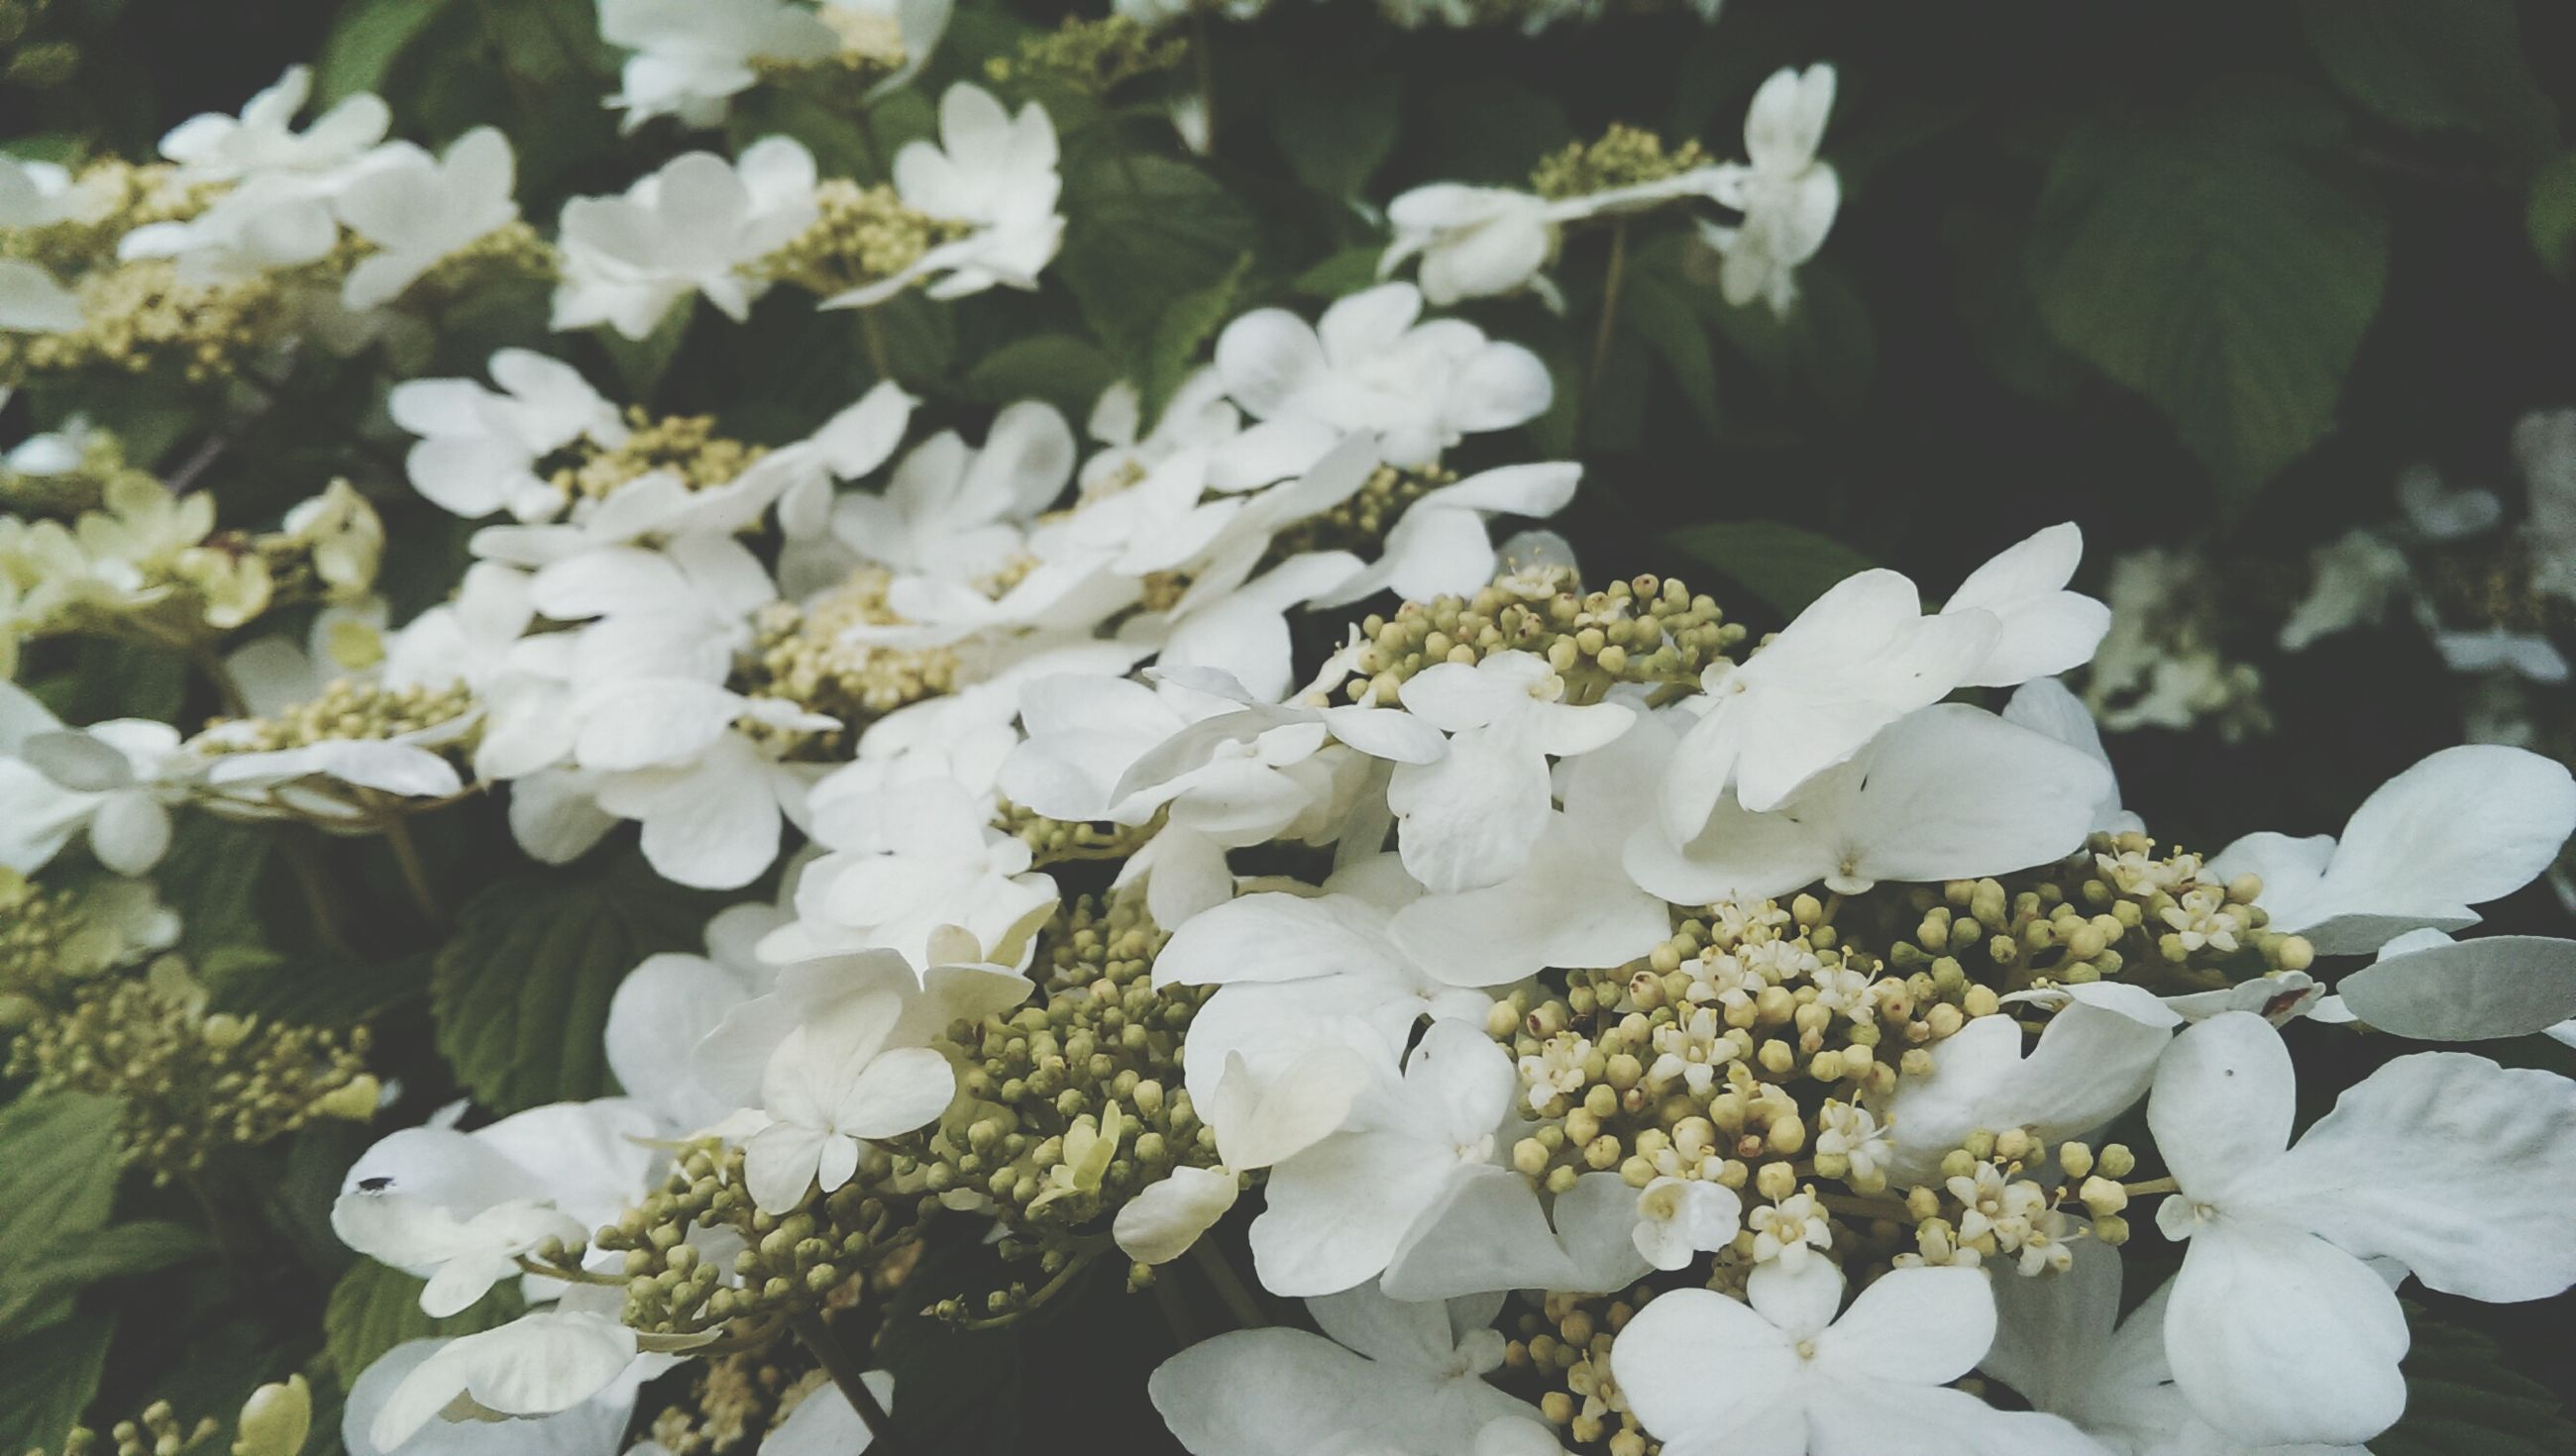 flower, white color, growth, fragility, freshness, petal, beauty in nature, nature, plant, flower head, blooming, white, high angle view, abundance, close-up, field, in bloom, leaf, outdoors, day